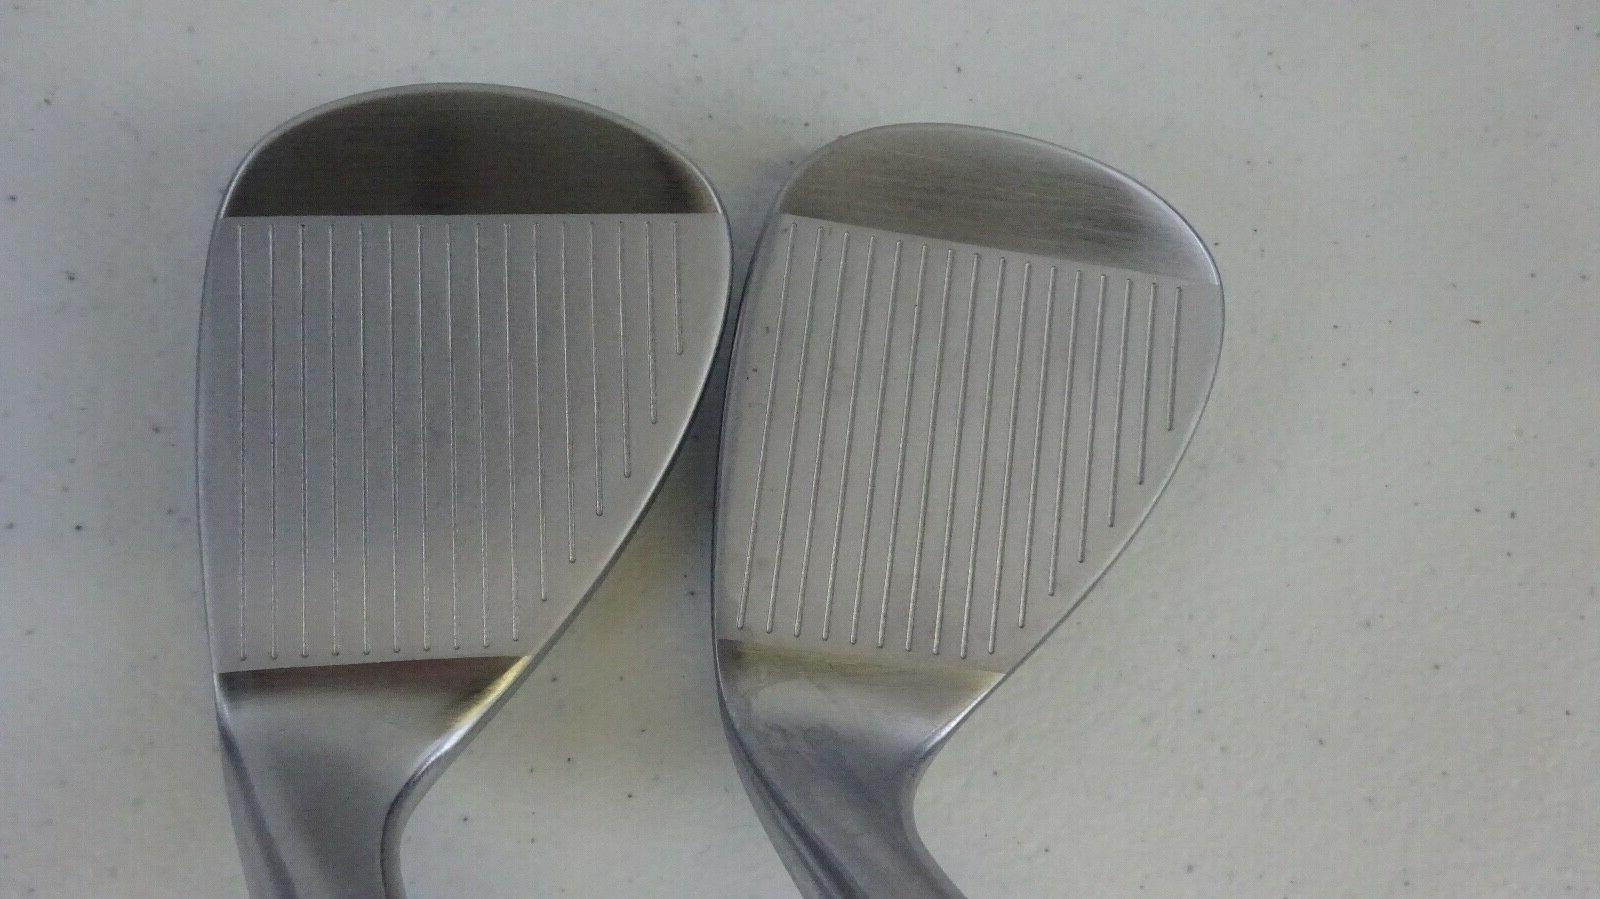 LEFTY MacGregor Pro 60* Forged Lob Wedge S300